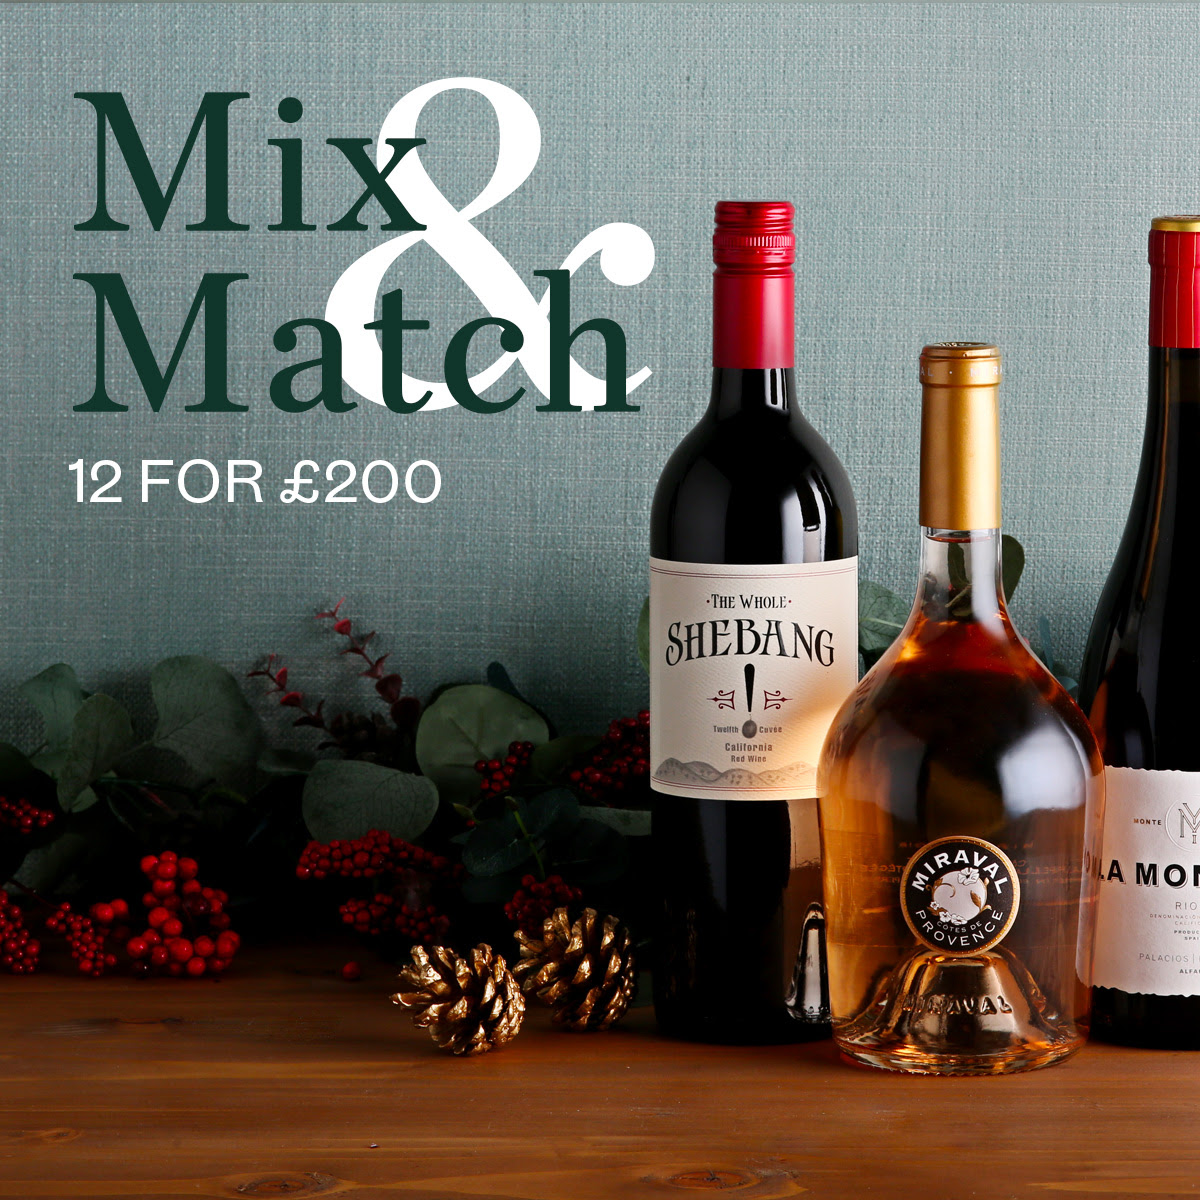 Berry Bros. & Rudd - Mix and match: 12 for £200